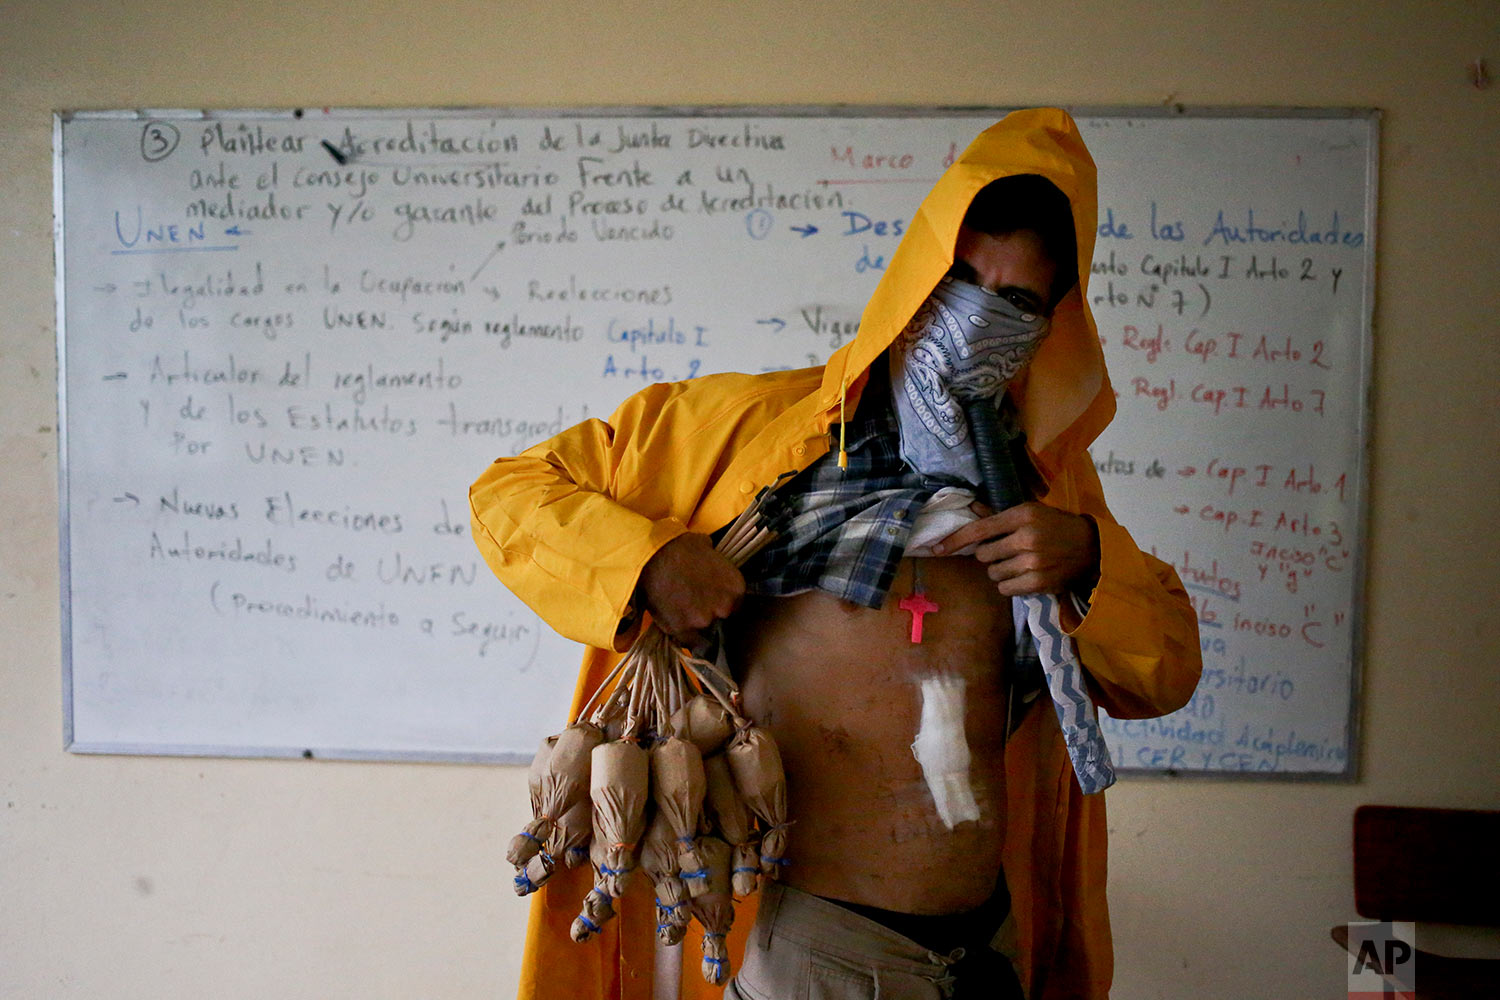 In this June 10, 2018 photo, a university student hiding his identity shows a wound he says he got when he was shot by government security forces during an anti-government protest, inside the Autonomous University of Nicaragua where students have barricaded themselves on campus in Managua, Nicaragua. (AP Photo/Esteban Felix)